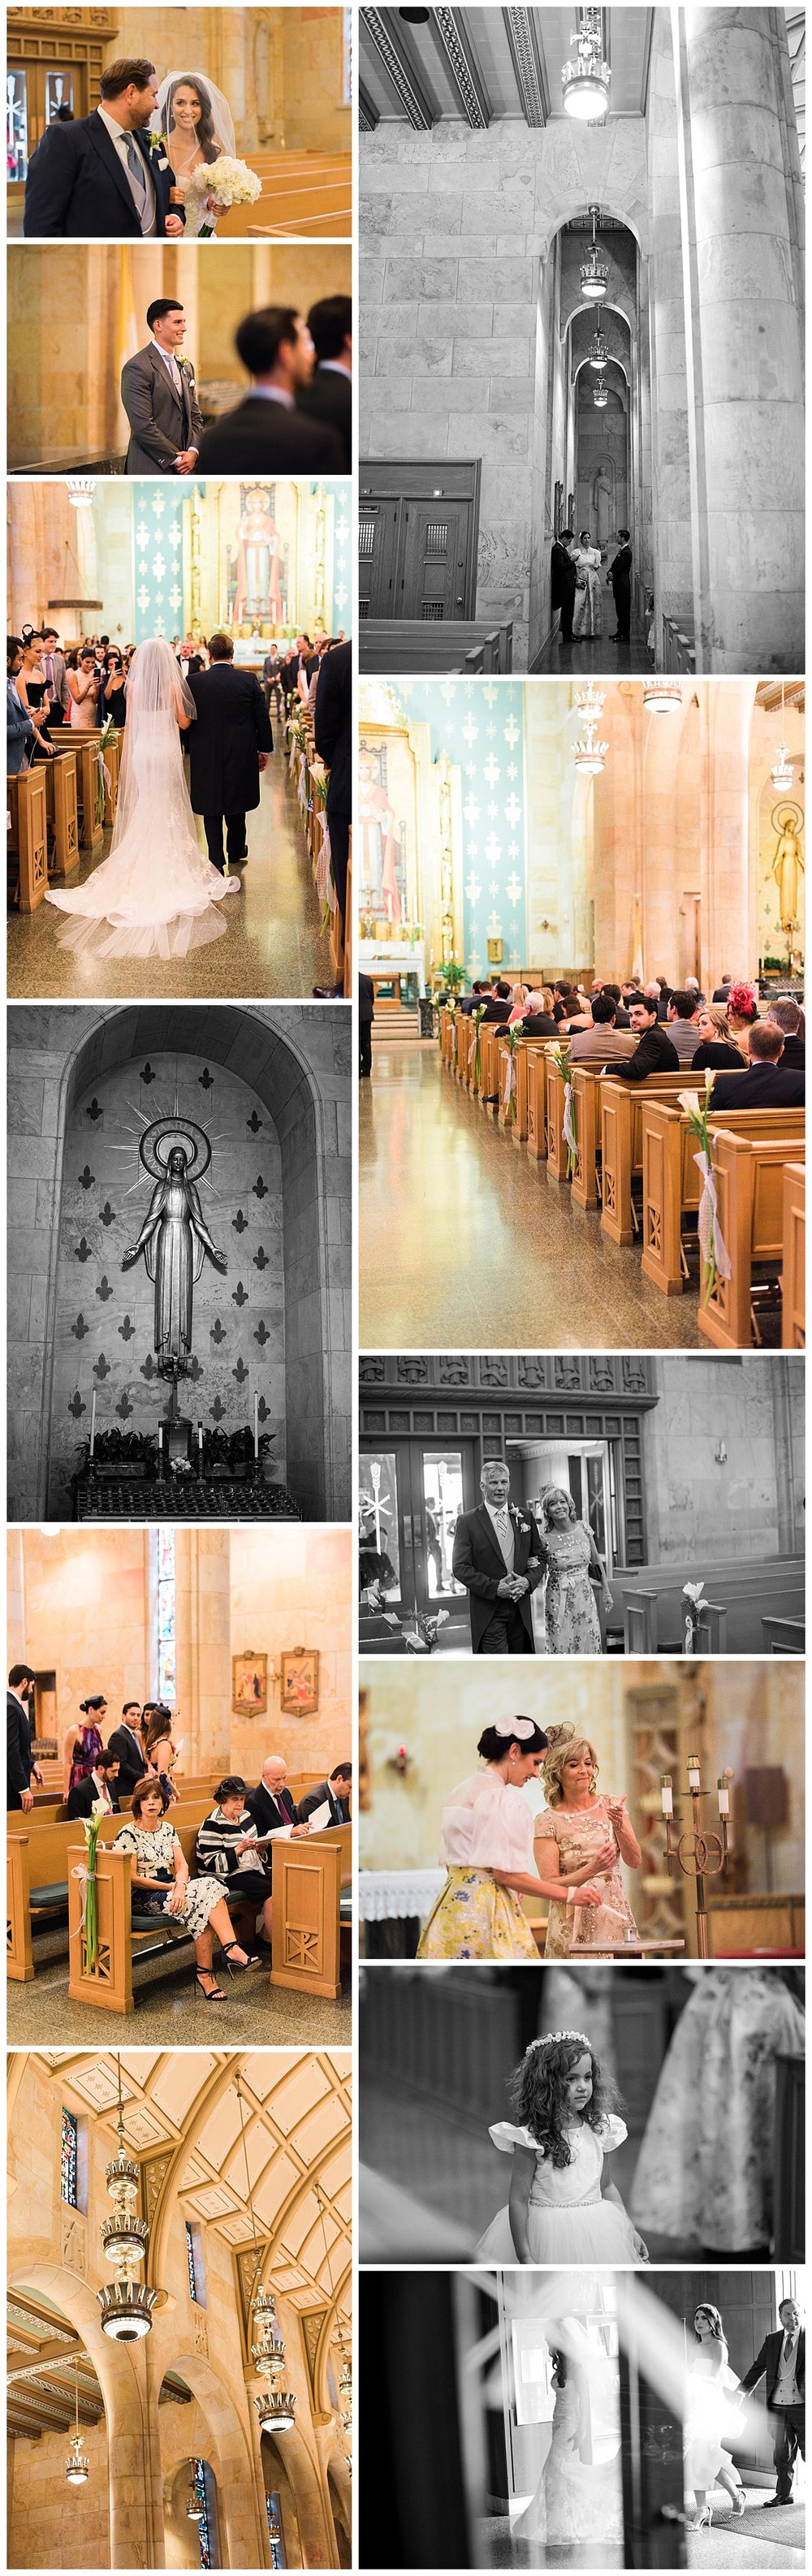 christ-the-king-catholic-church-wedding-ar-photography-4.jpg